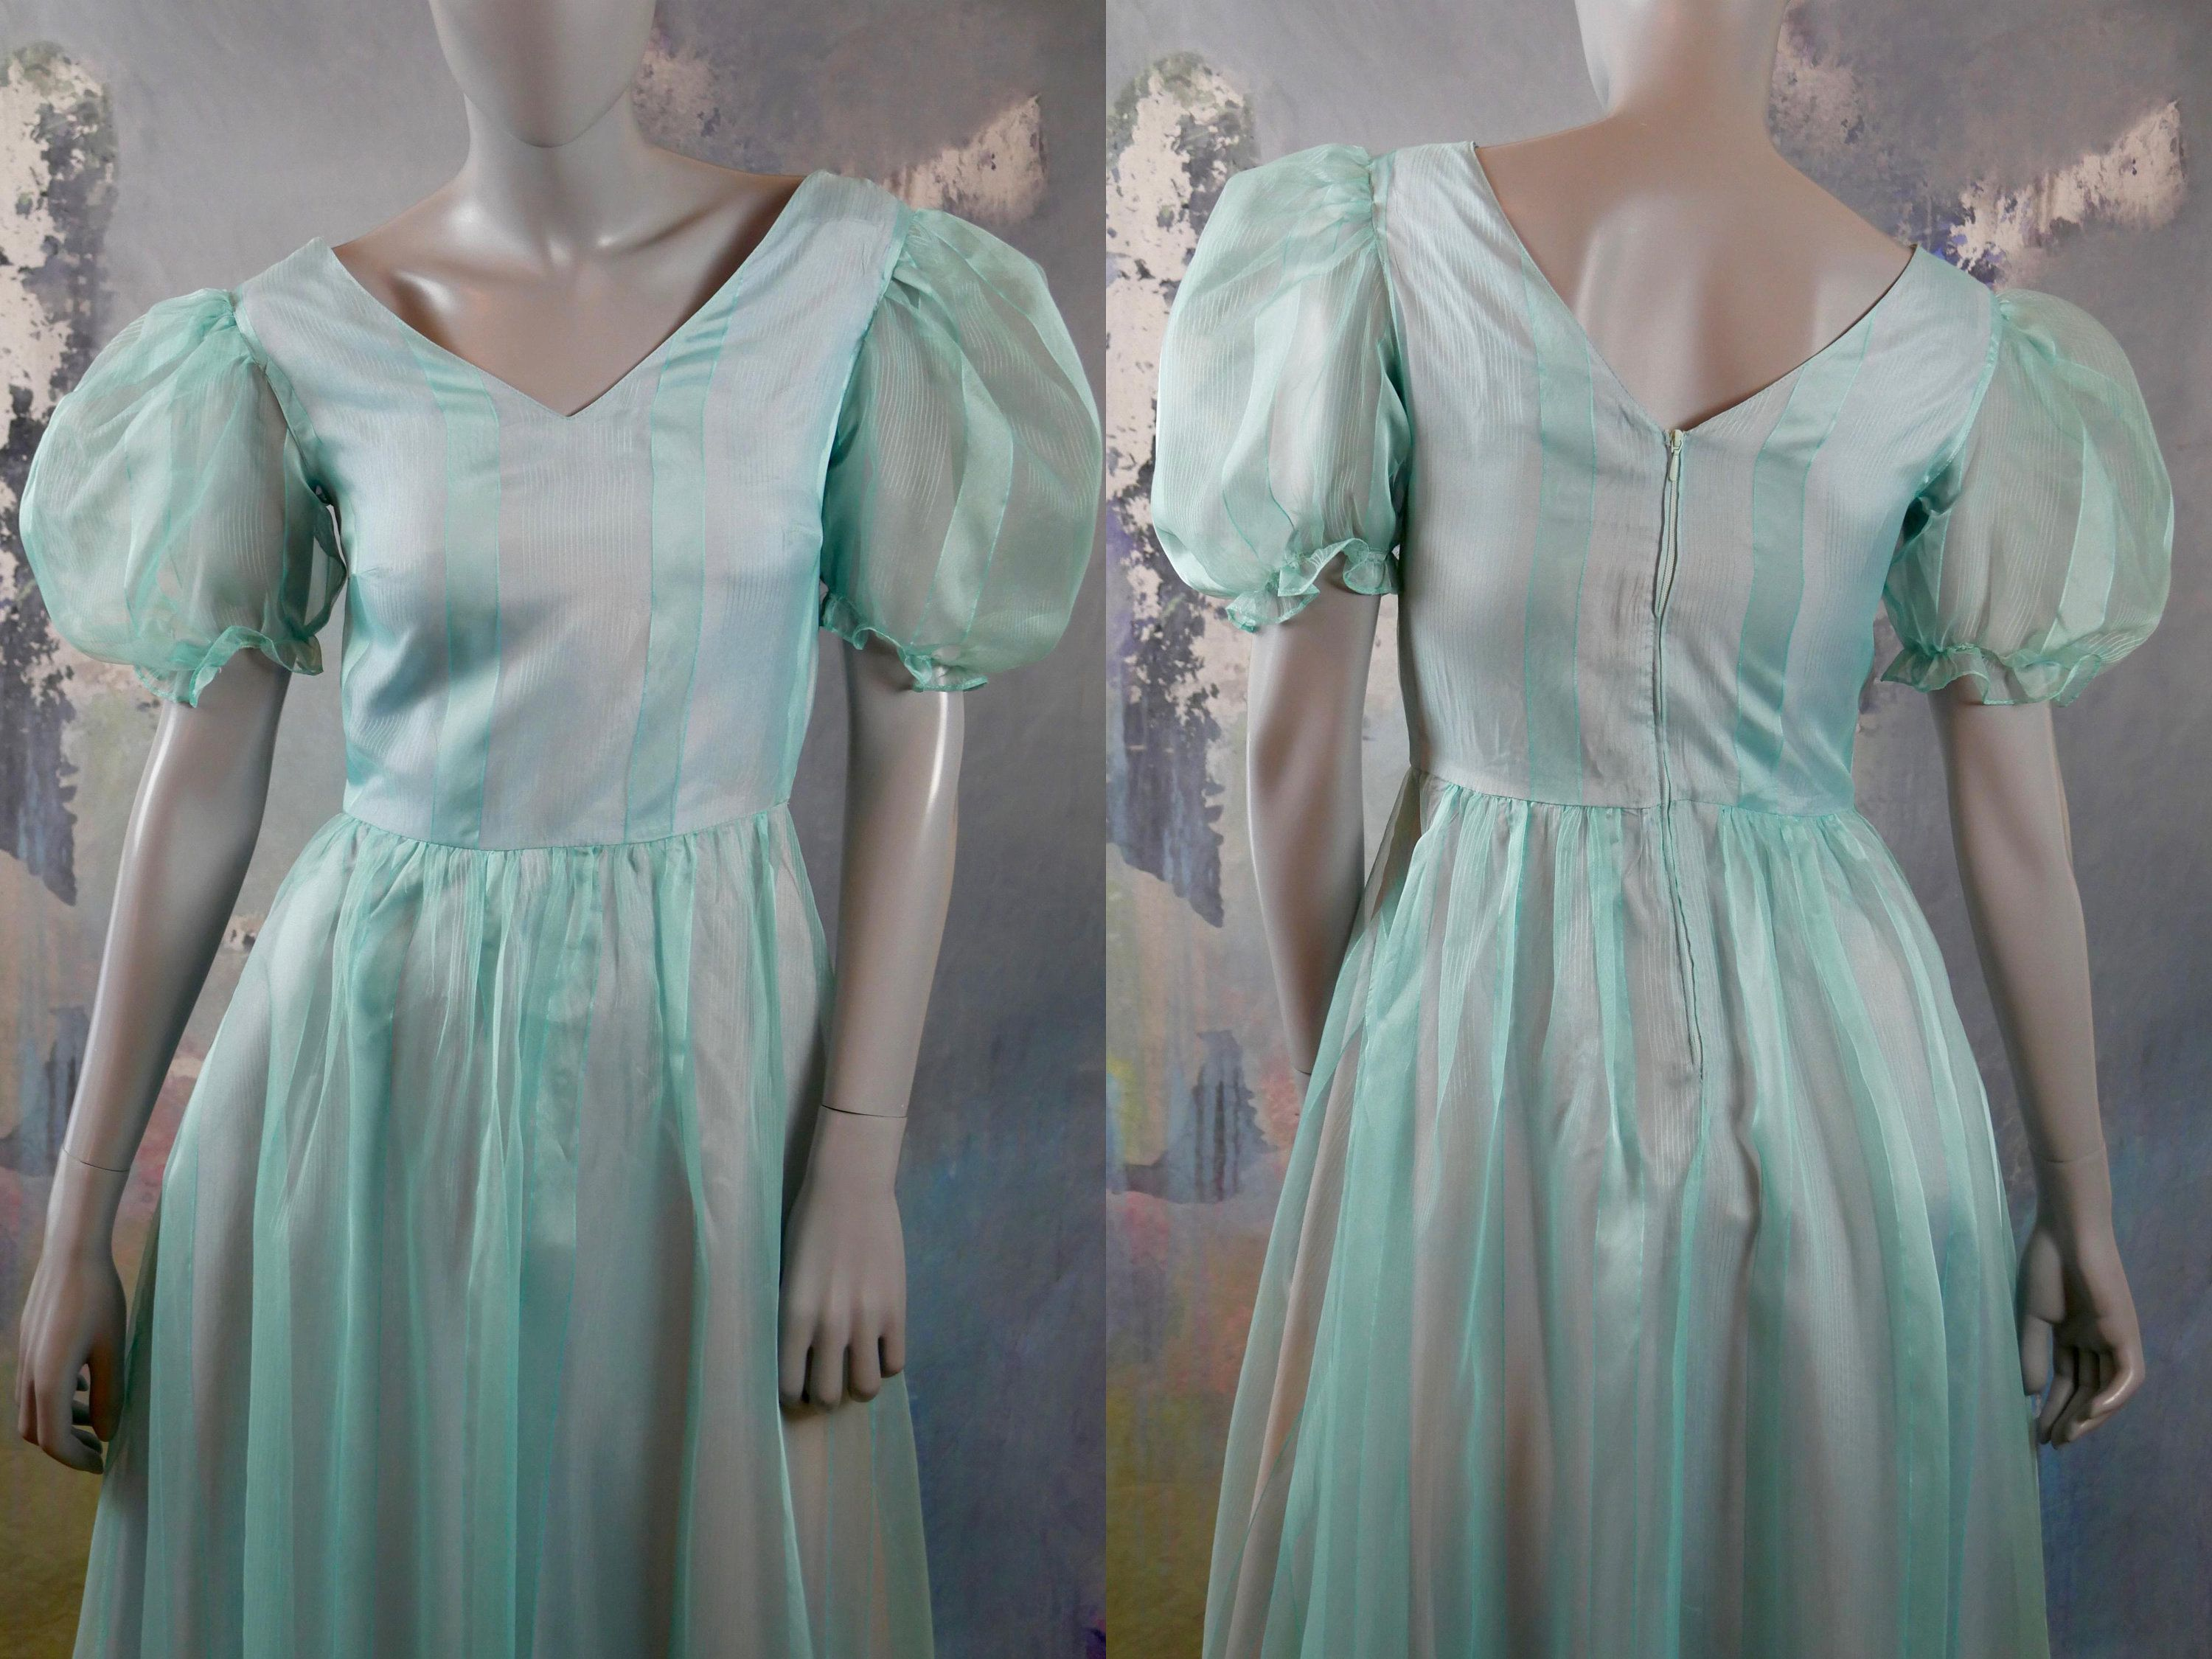 1970s Turquoise Prairie Style Prom Dress Sheer W Vertical Etsy Sheer Dress Vintage Clothes Women Vintage Clothes Shop [ 2250 x 3000 Pixel ]